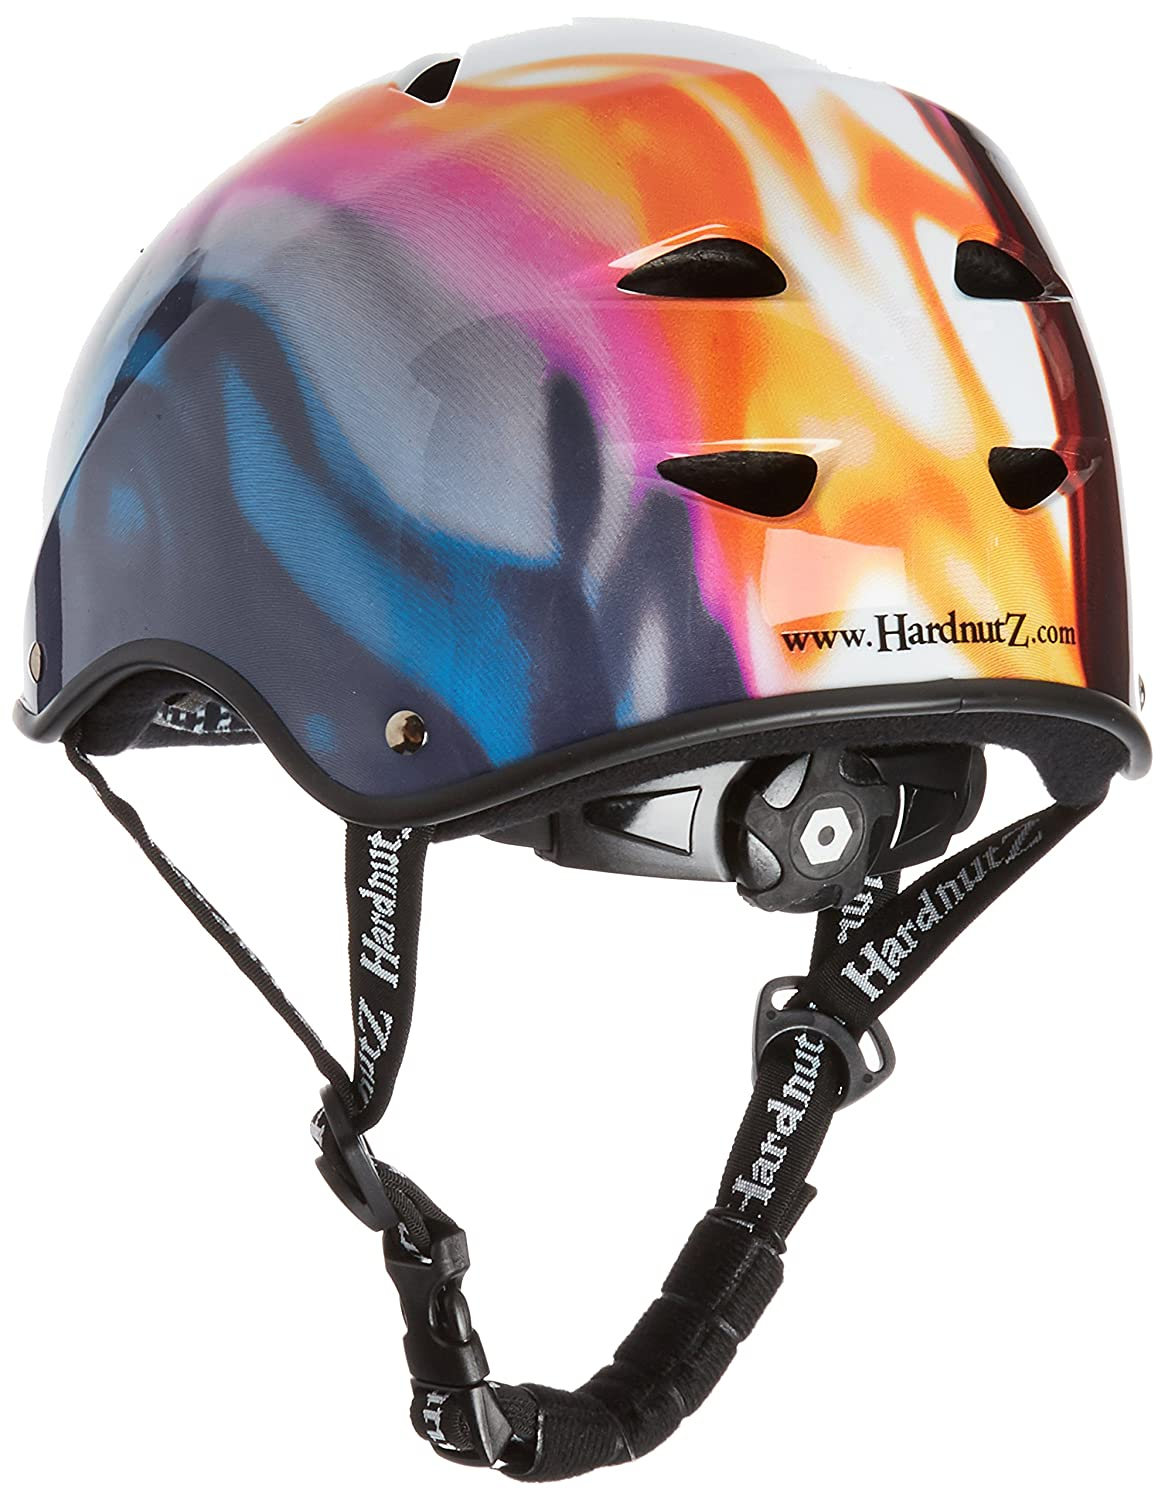 Hardnutz HN102 Cycle Cycle Cycle Street Helm B006JMZX5A Allround-Helme Fairer Preis 849bd7